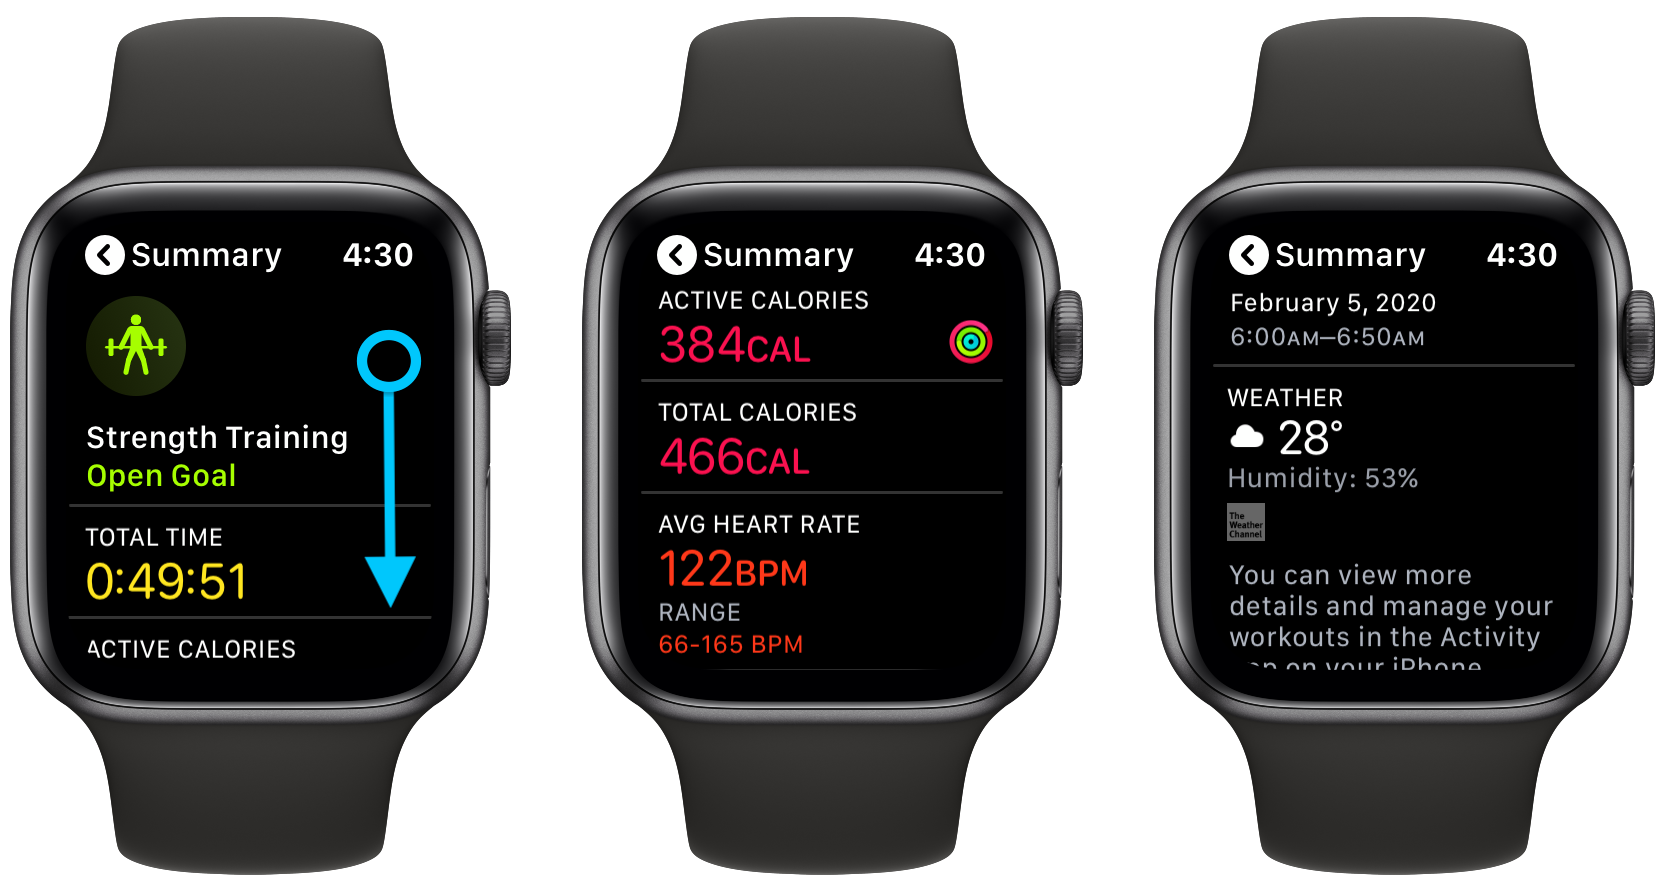 Apple Watch how to see workout history walkthrough 2